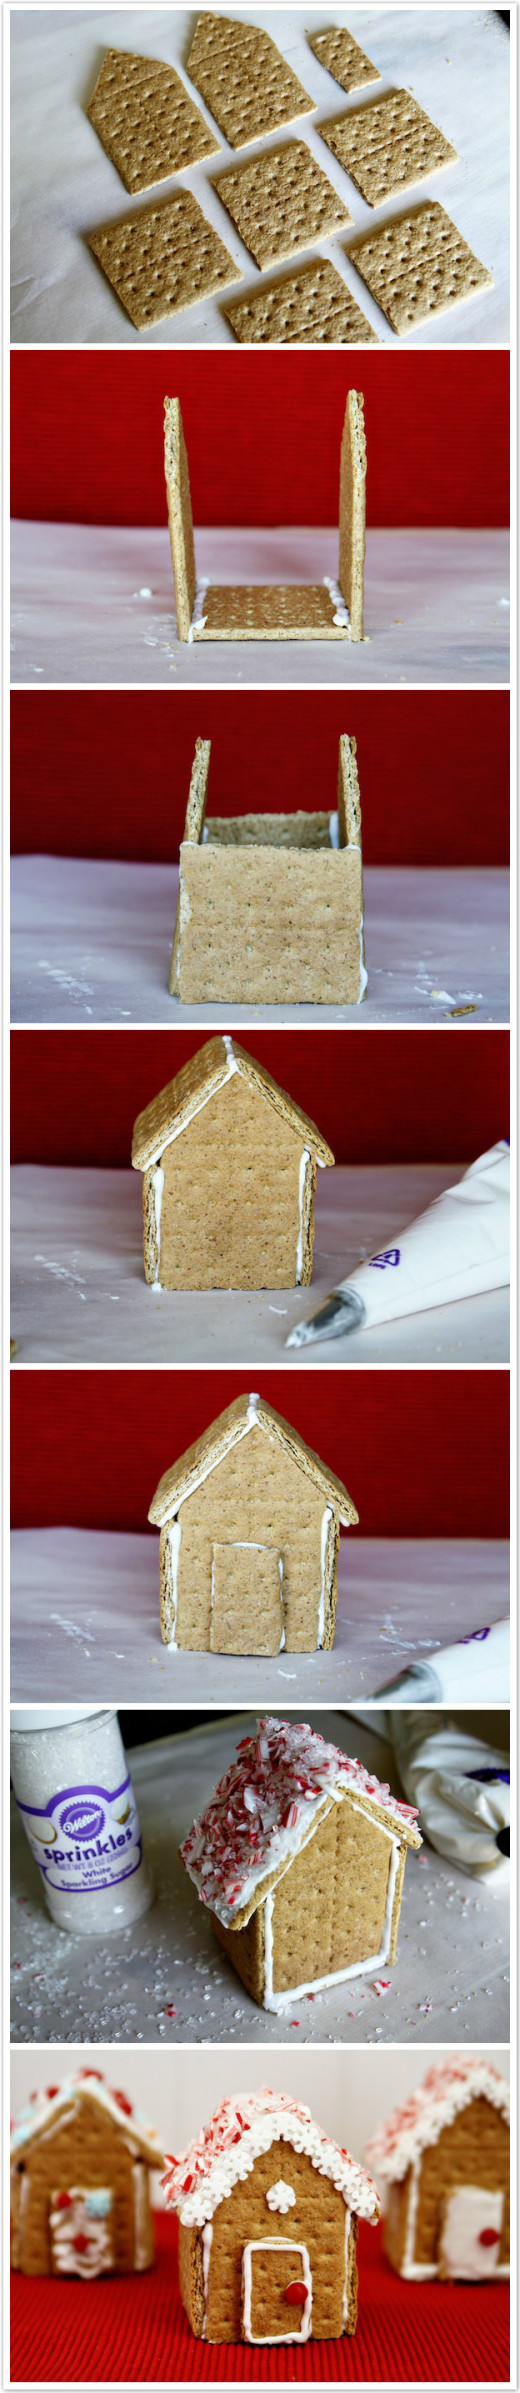 How To Make Graham Cracker Gingerbread Houses